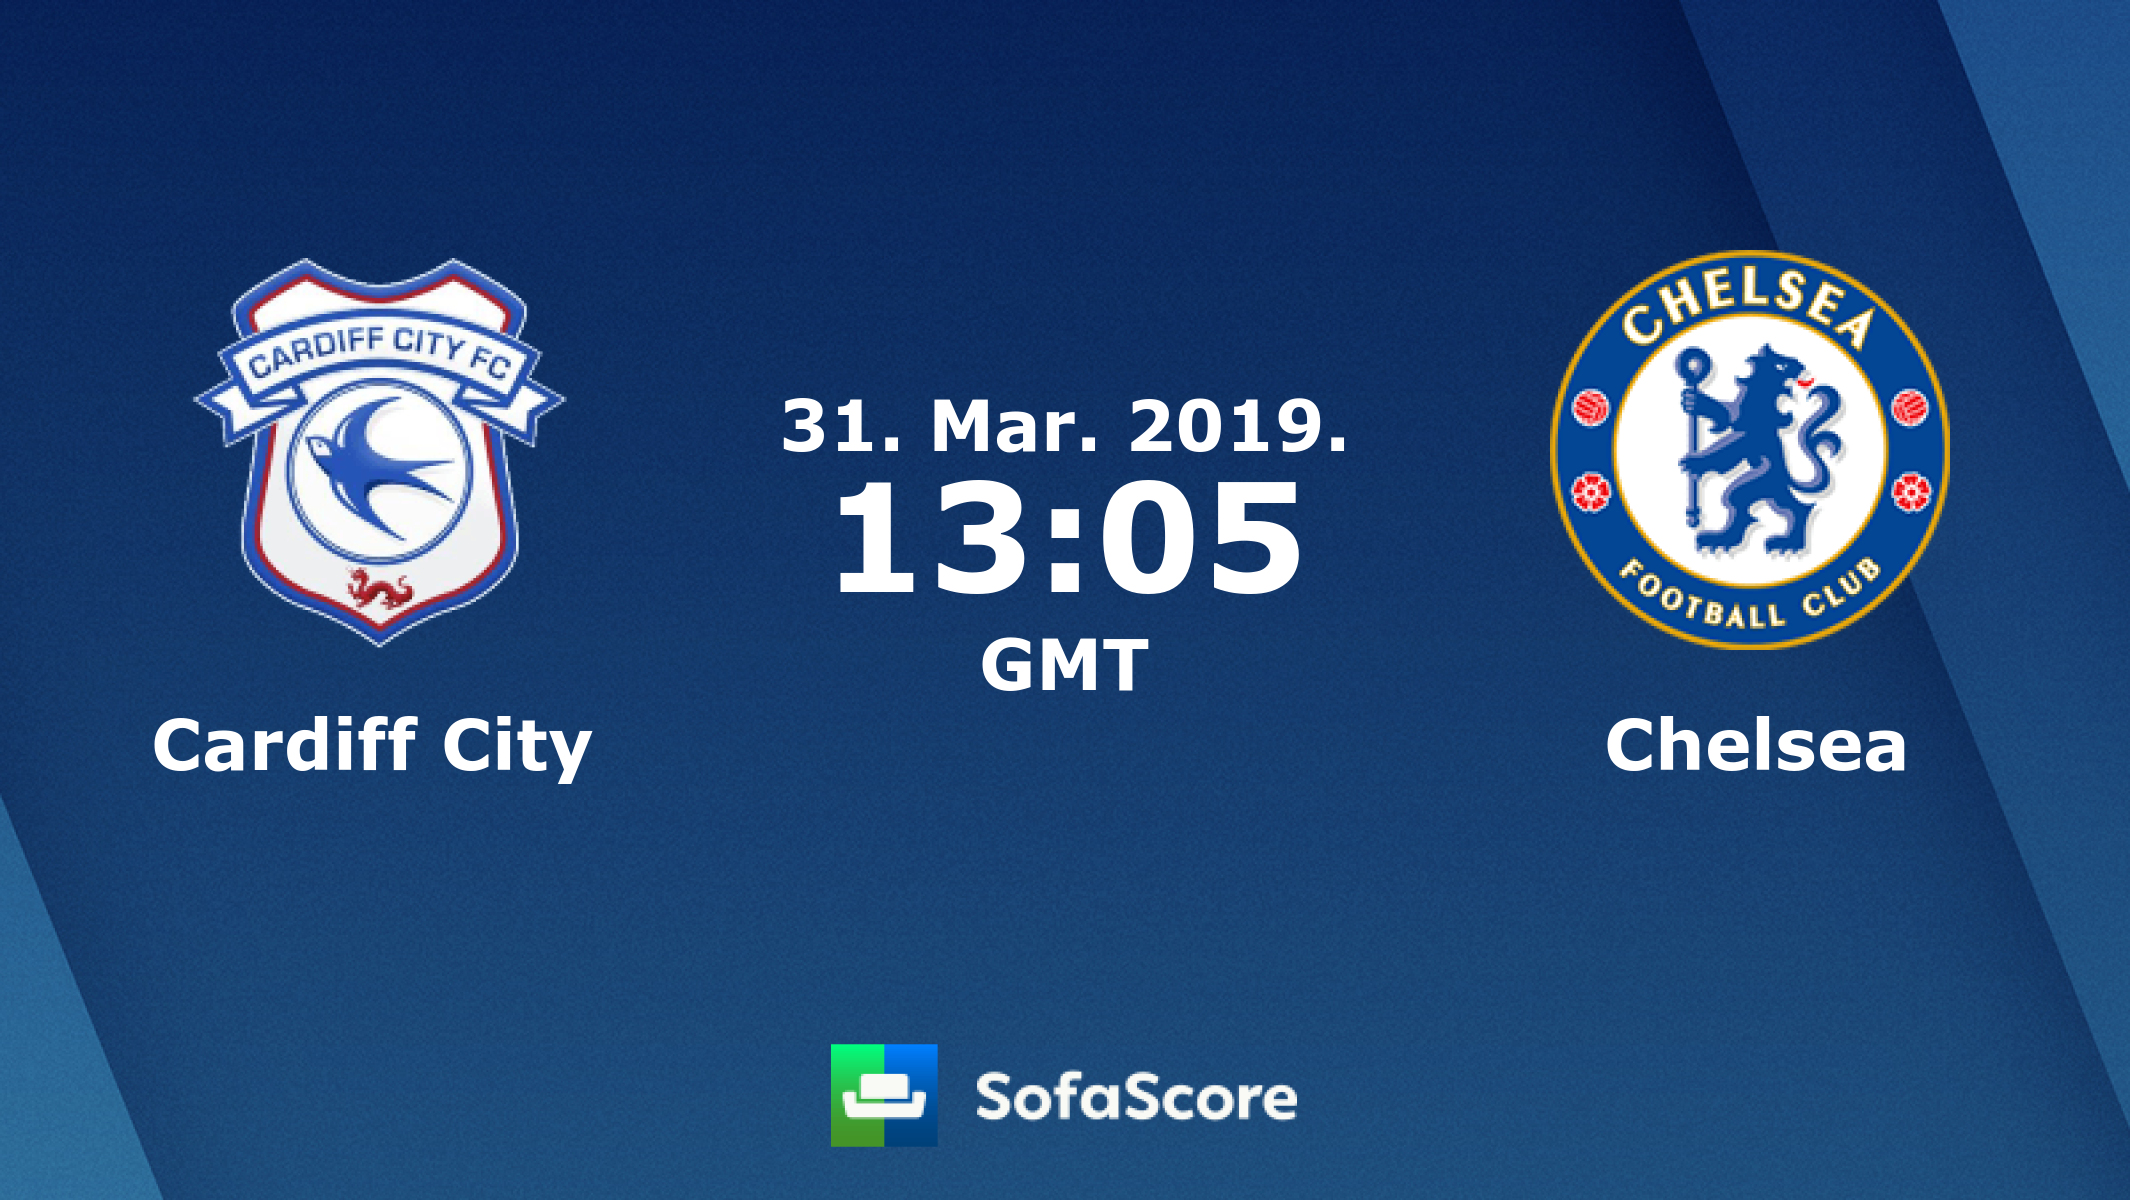 Cardiff City Chelsea live score, video stream and H2H